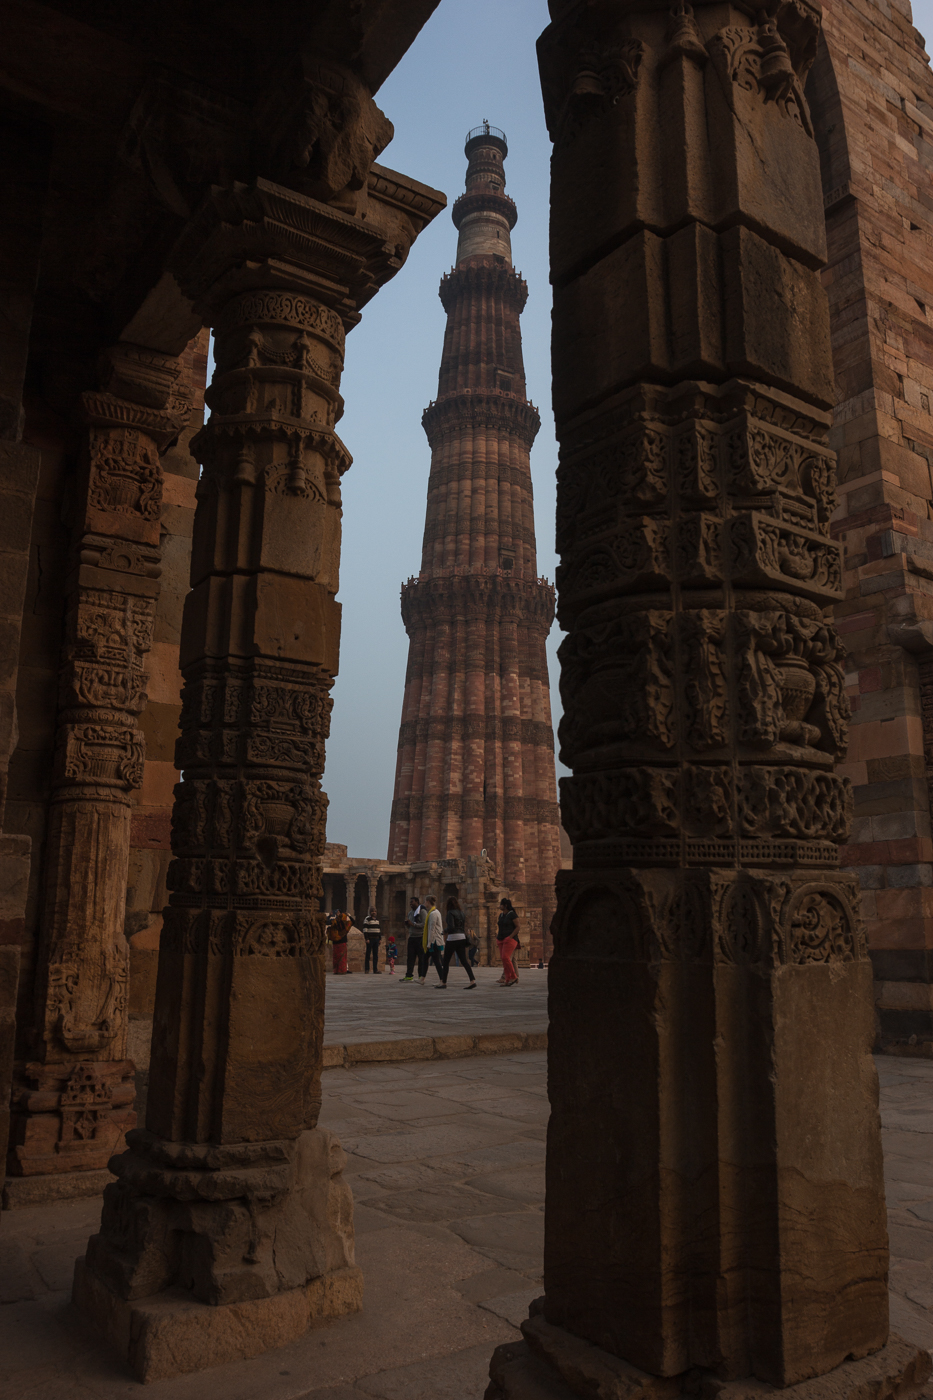 Vertical shot of the Qutb Minar in New Delhi, India. Travel architecture and historical photography.